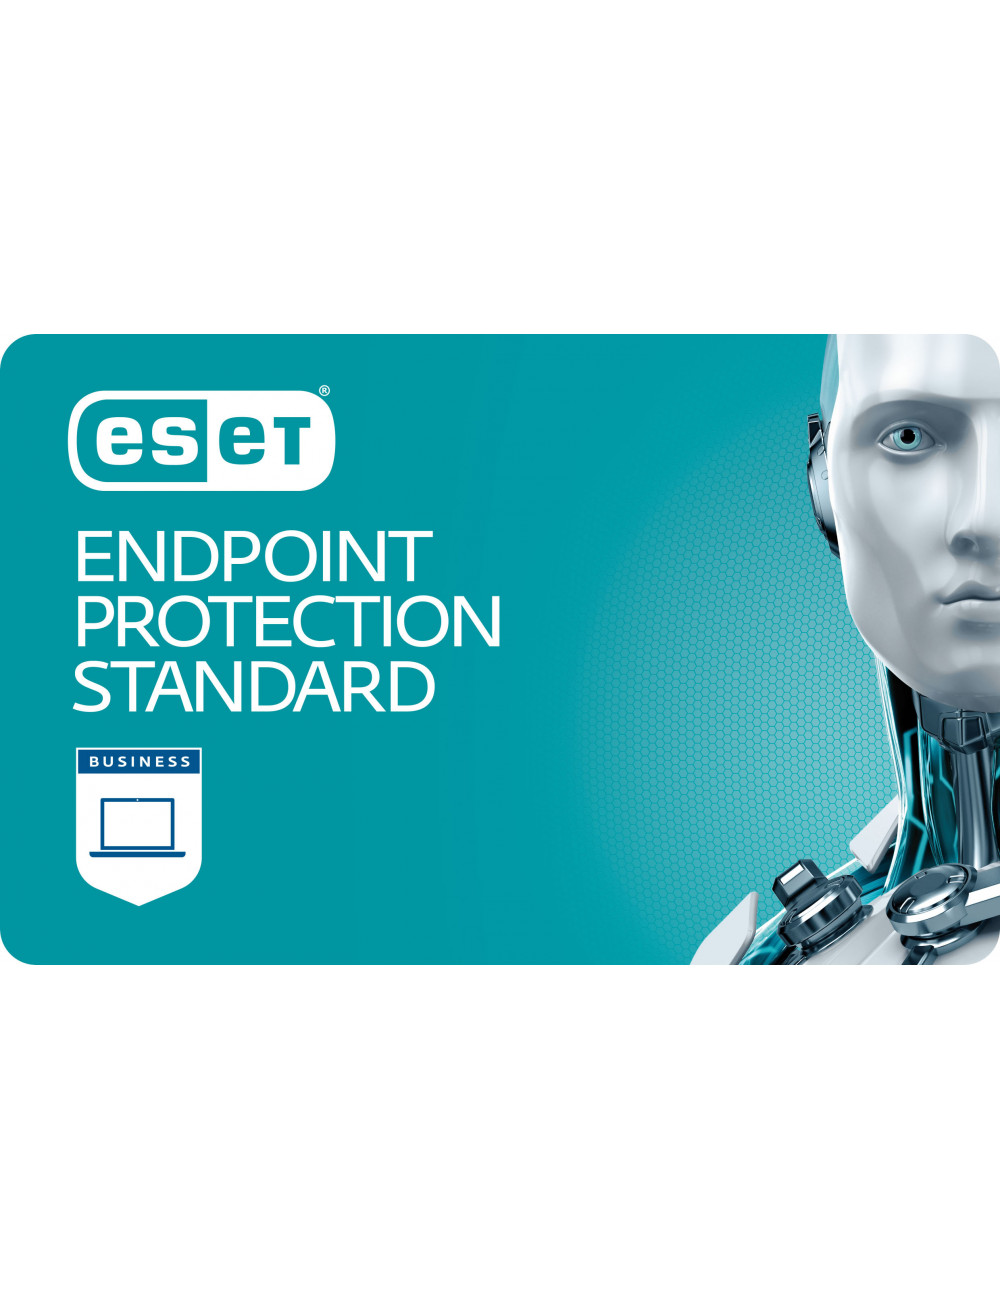 ESET Endpoint Protection Standard (500-999 postes) -  Licence 1 poste - 1 an